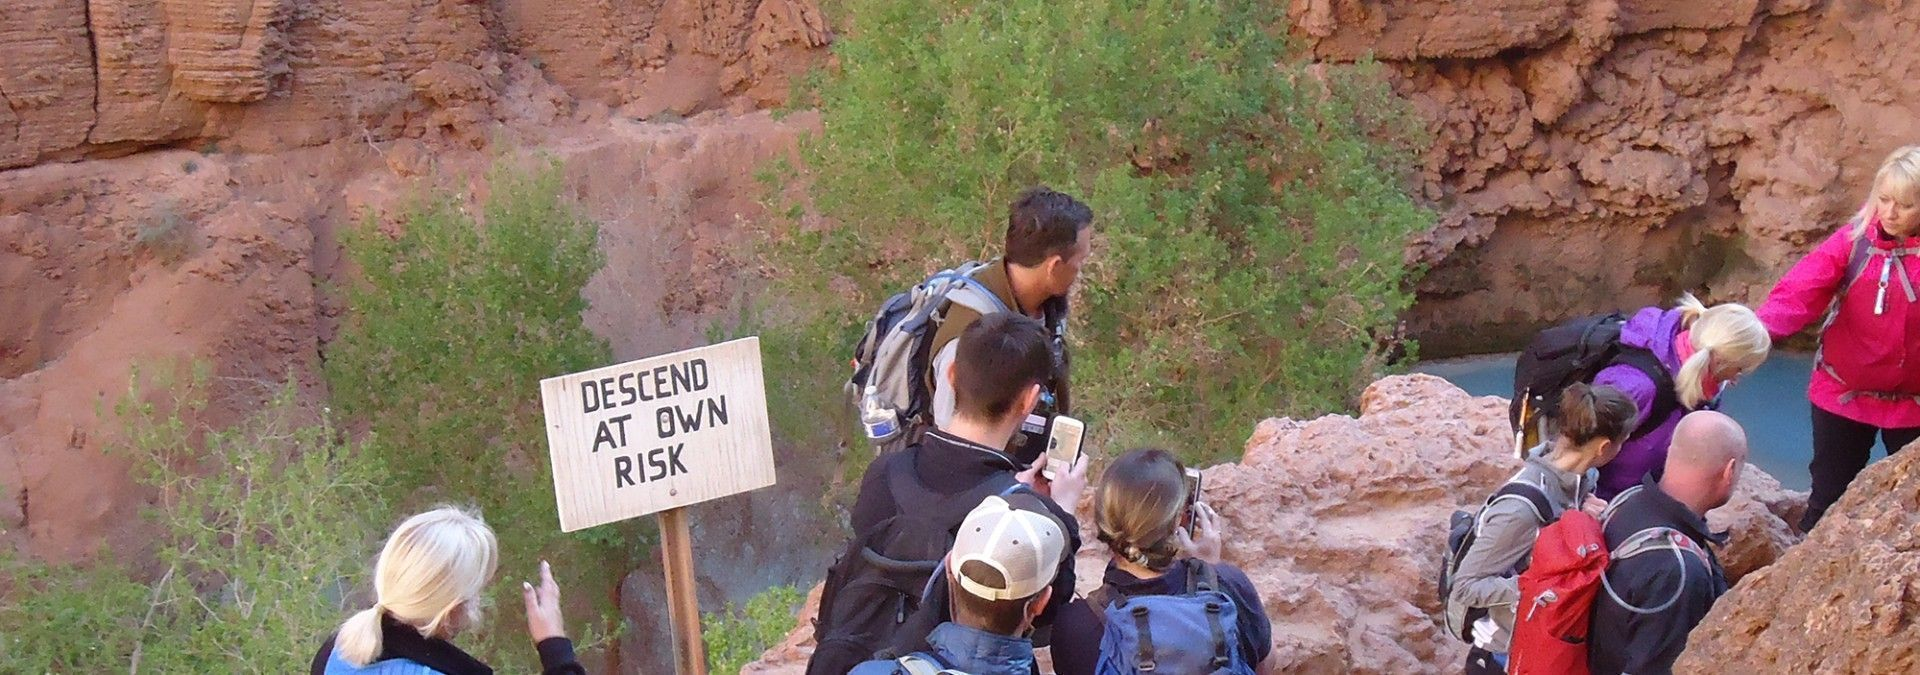 Descending_the_Canyon_USA_trekking.jpg